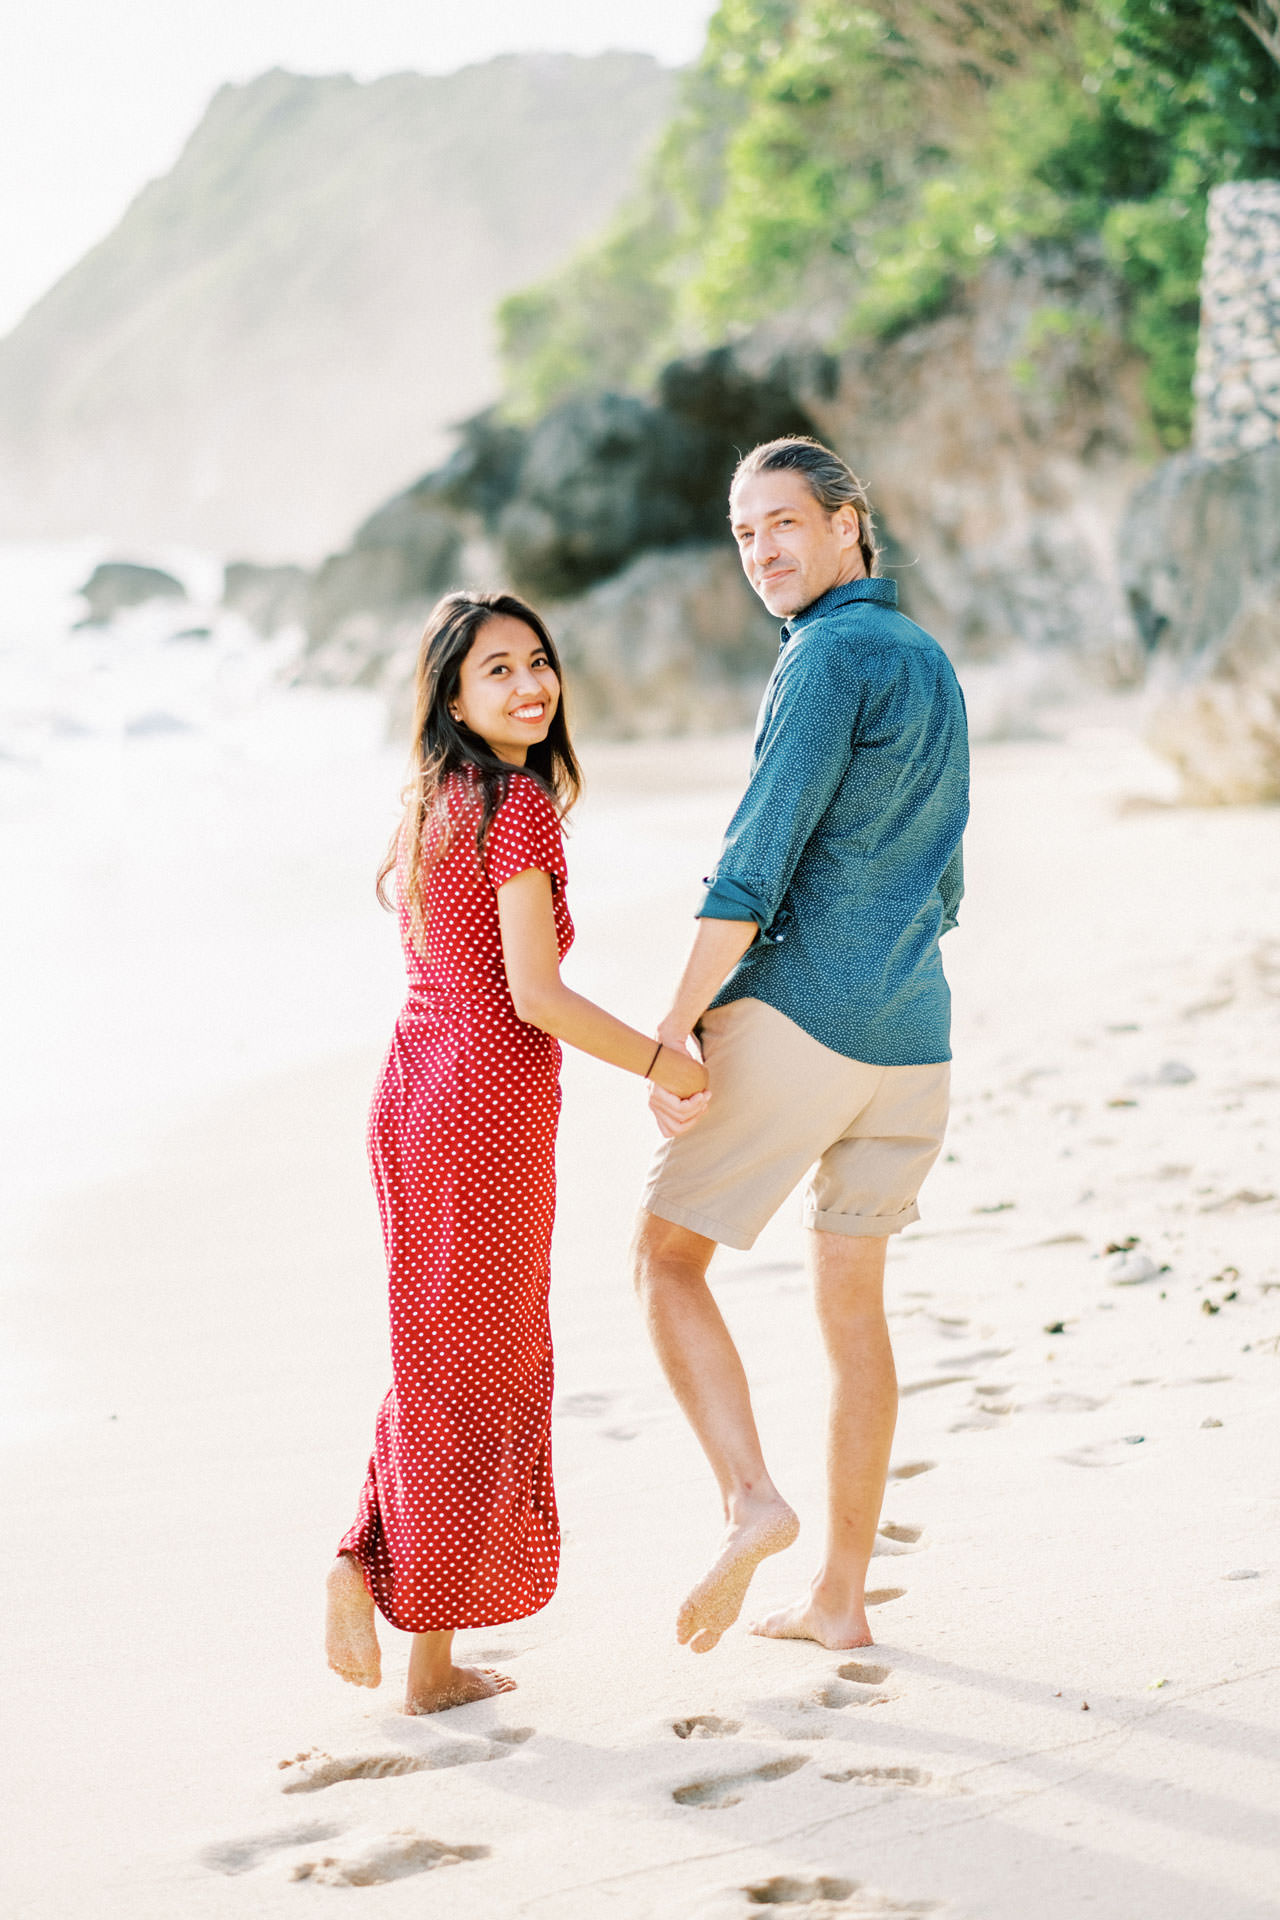 Bali's Beach Marriage Proposal with a Proposal Video! 17